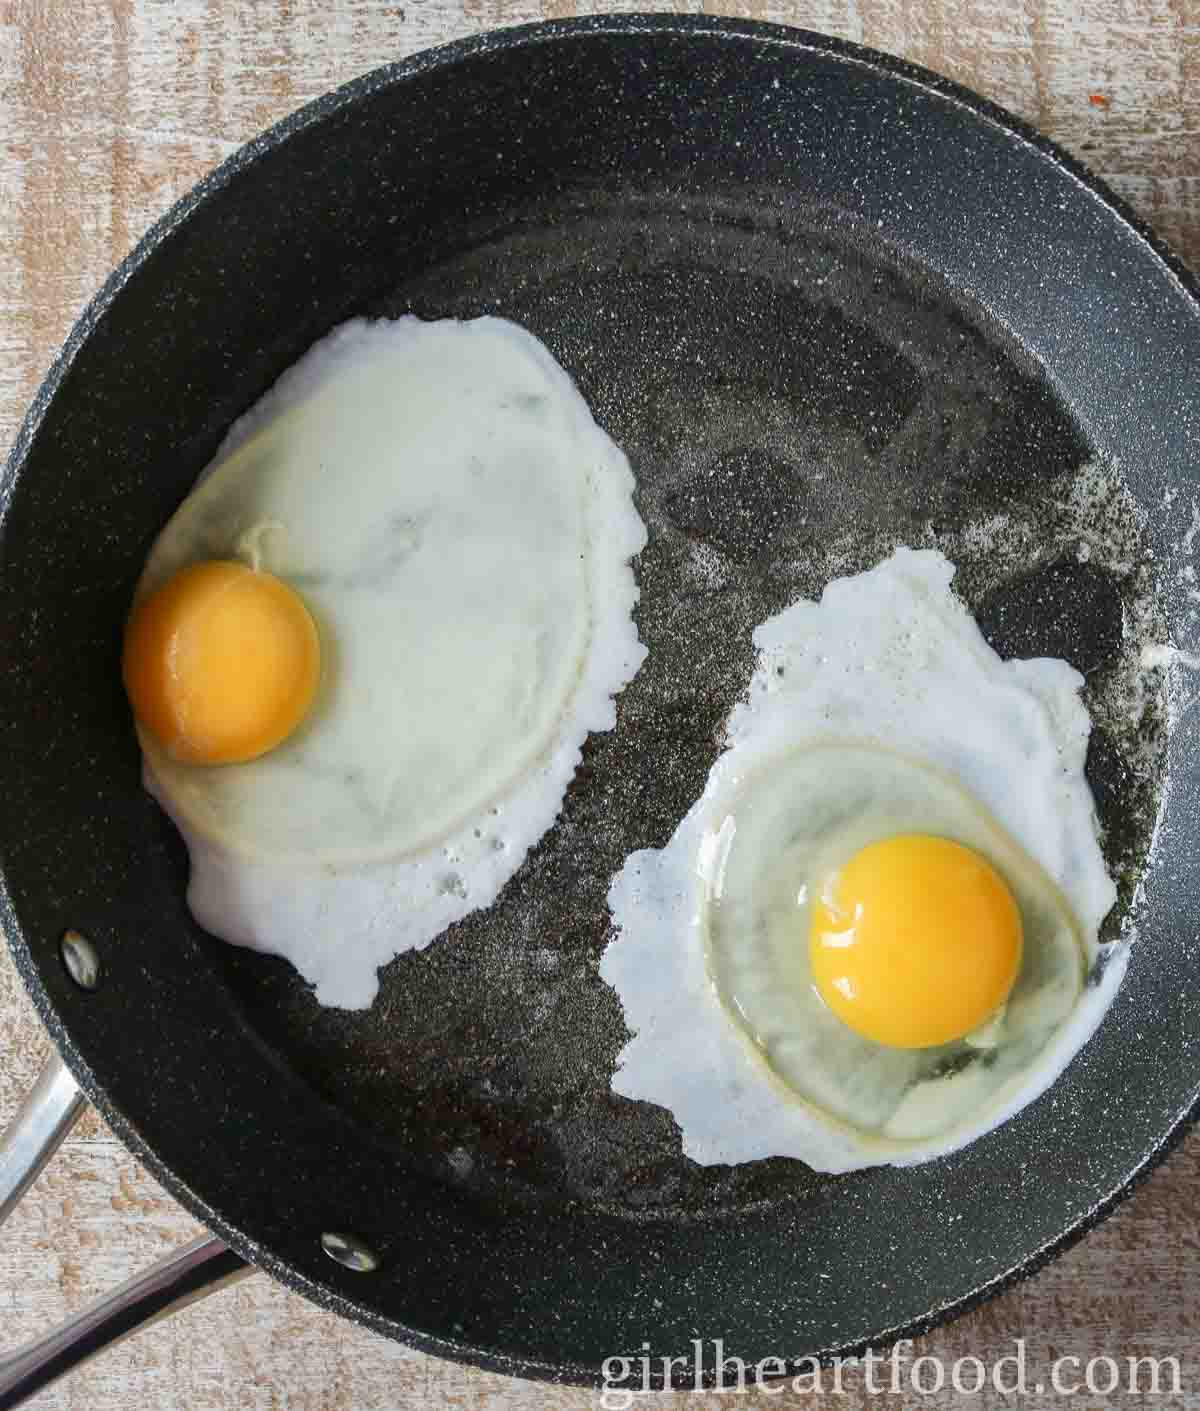 Two eggs frying in a non stick pan.